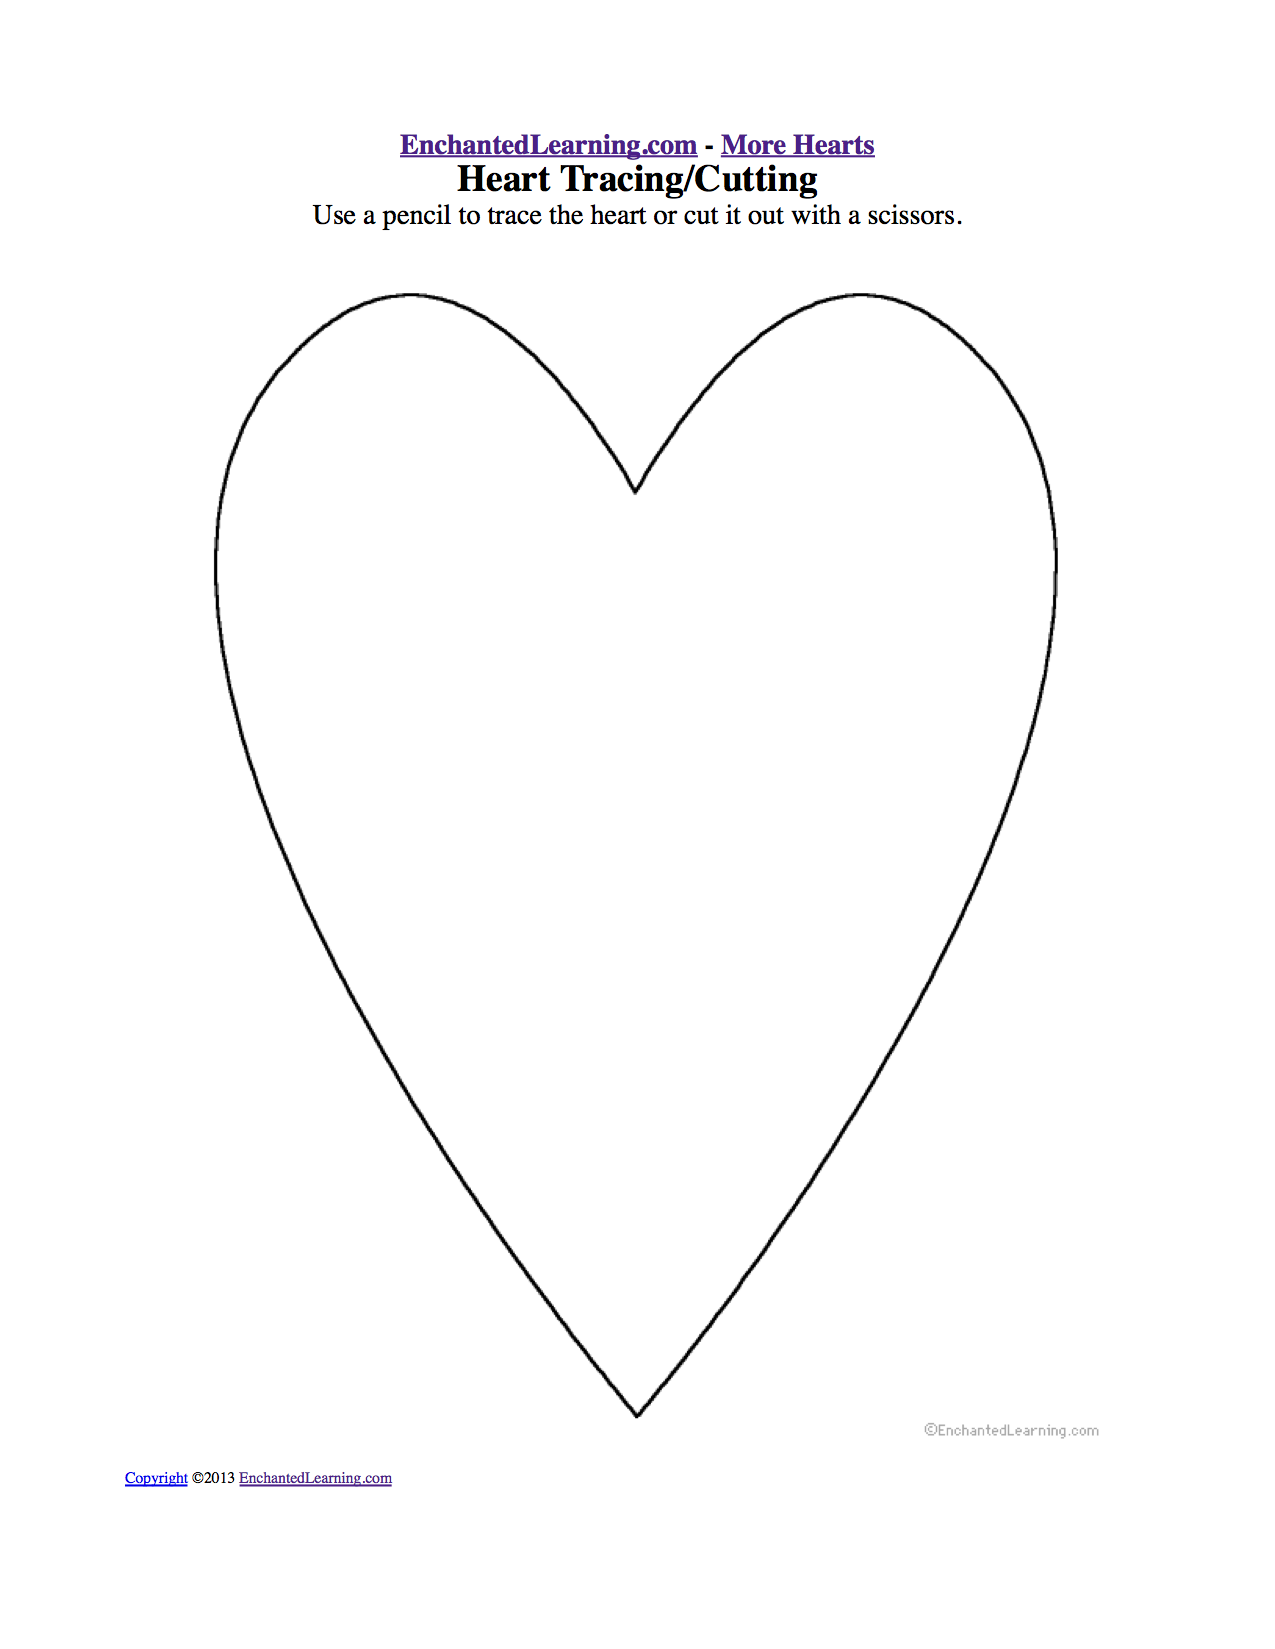 What goes together what doesn t belong fun worksheets and cut and - Heart Trace Or Cut